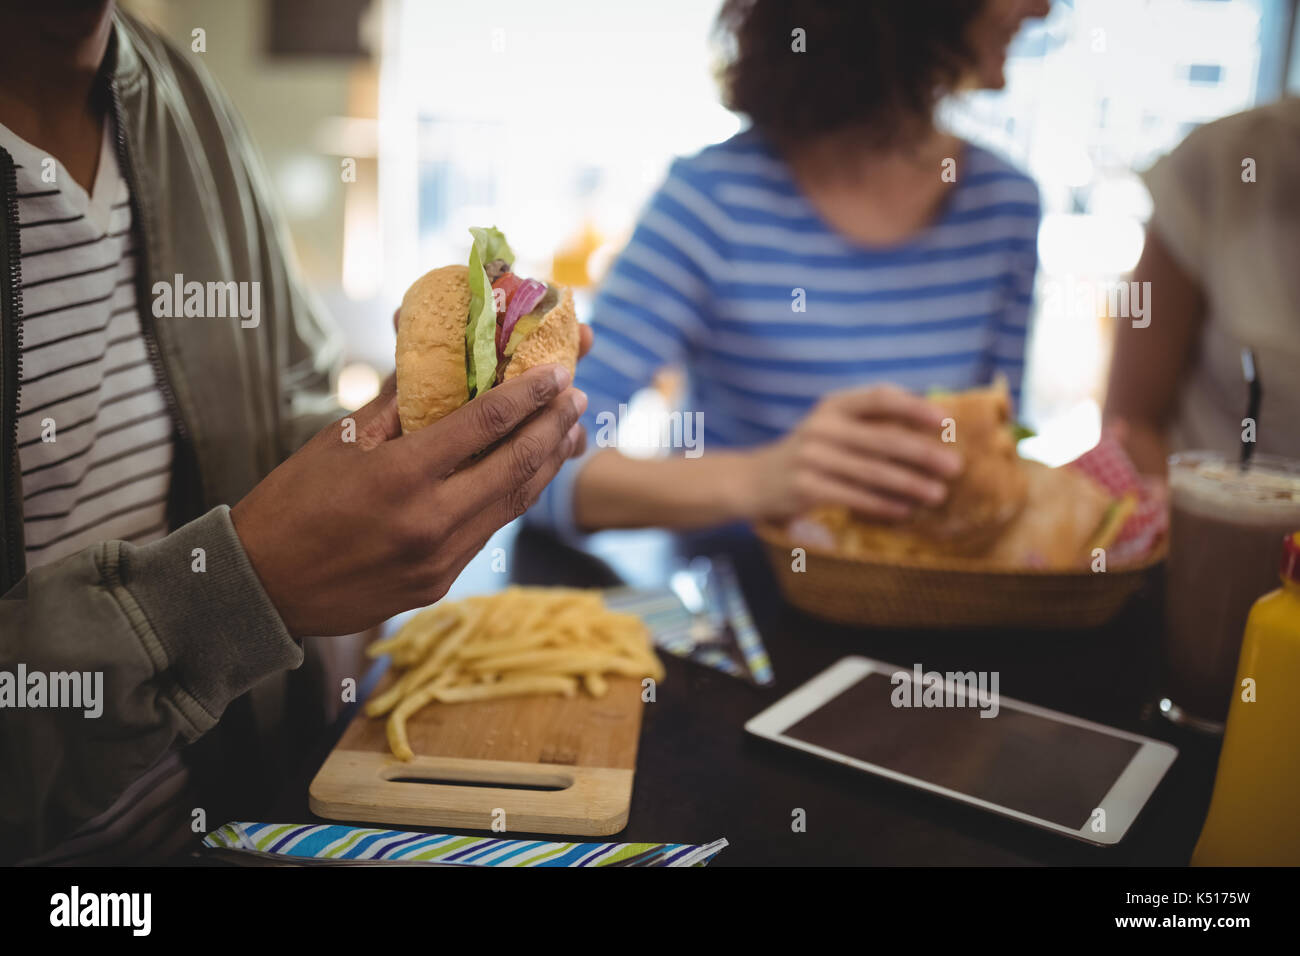 Midsection man holding fresh hamburger while sitting at table in cafe - Stock Image